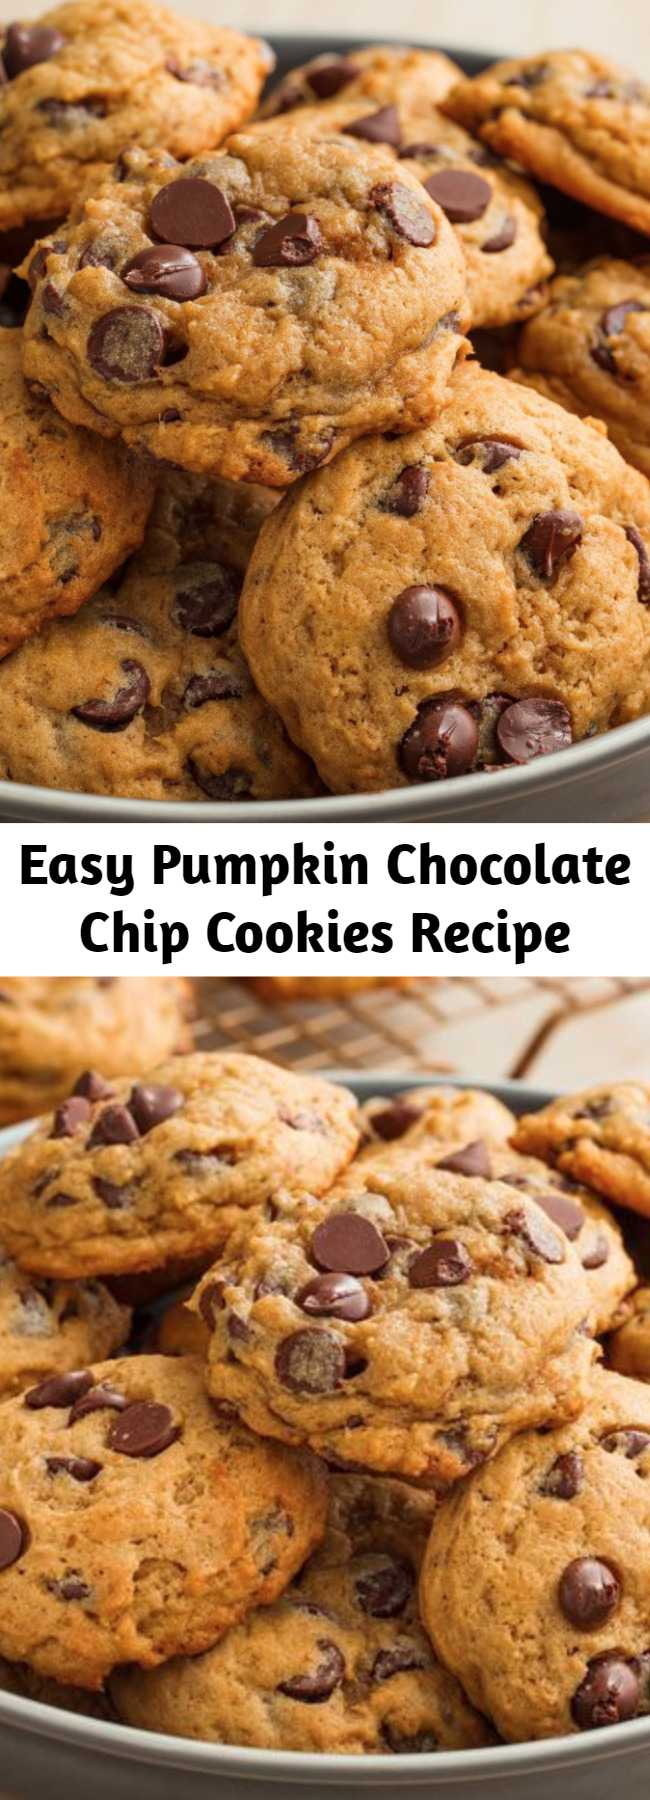 Easy Pumpkin Chocolate Chip Cookies Recipe - This is one of our most popular fall desserts, and it's not hard to see why. Adding pumpkin puree and pumpkin spice to the cookie dough results in a heavenly pillow-like cookie with major autumn vibes.